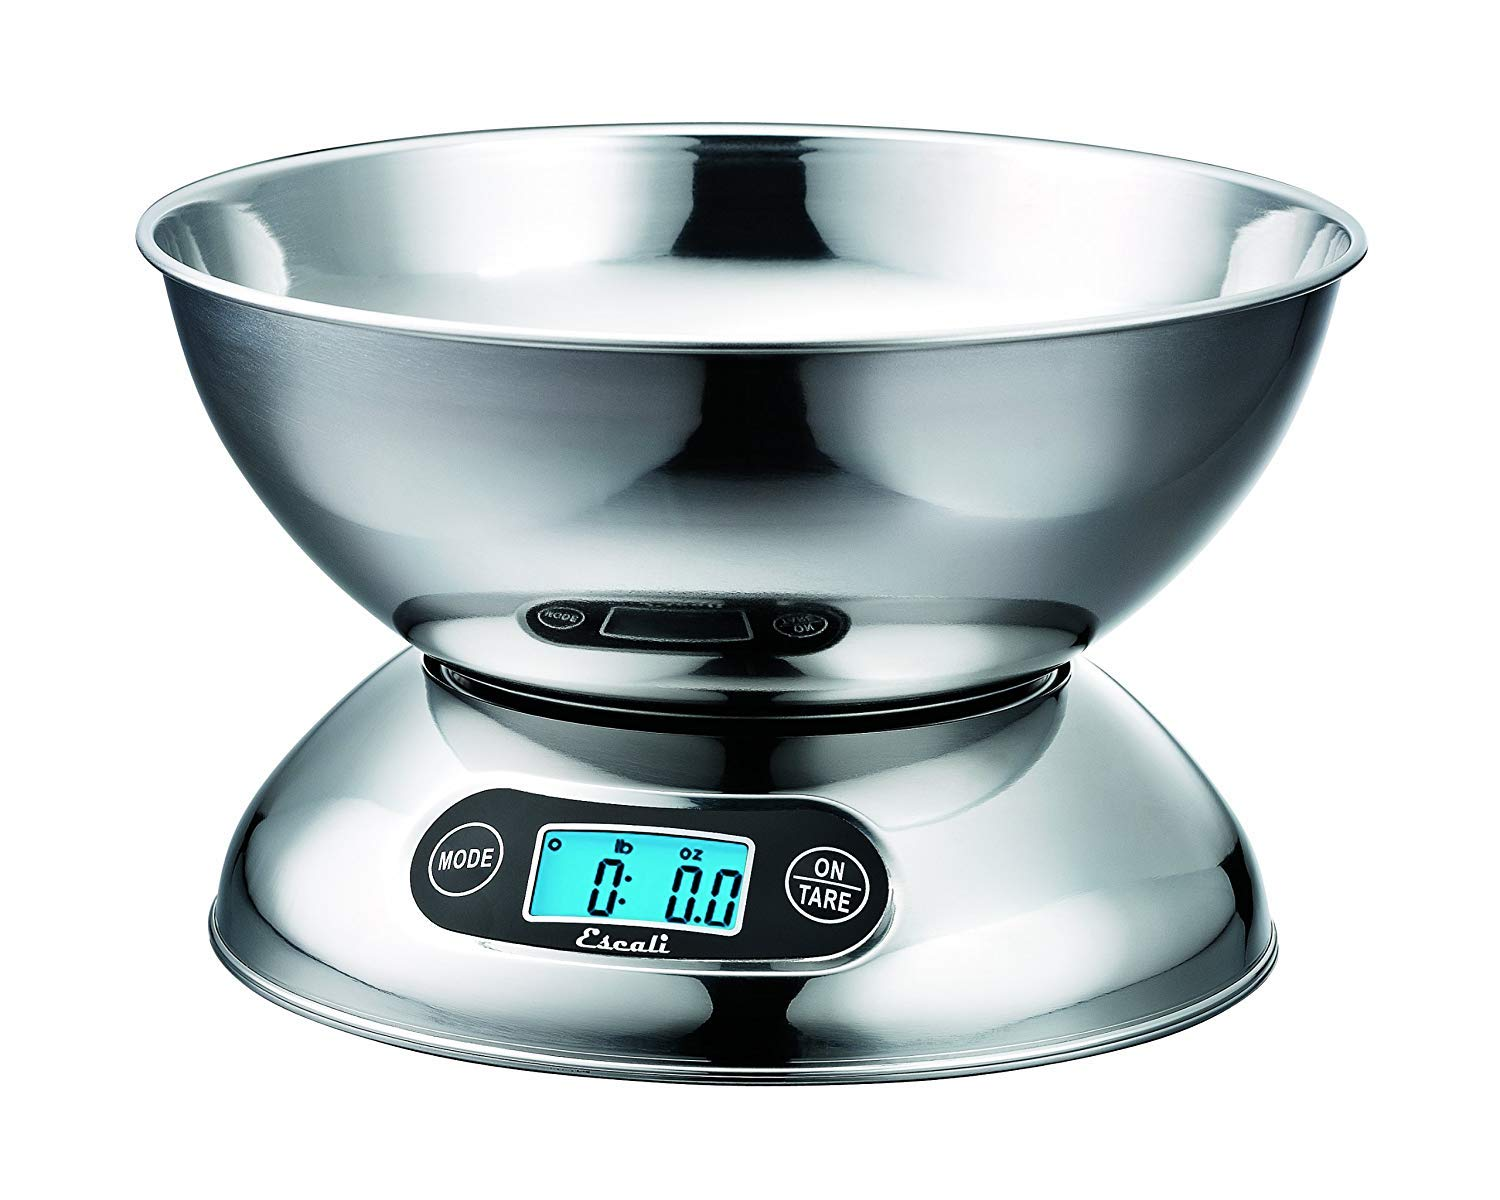 Escali Rondo R115 Contemporary Kitchen Bowl Scale 2-Quart, Dishwasher Safe Bowl, Measures Liquids and Dray Ingredients, LCD Digital Display, 11lb Capacity, Stainless Steel